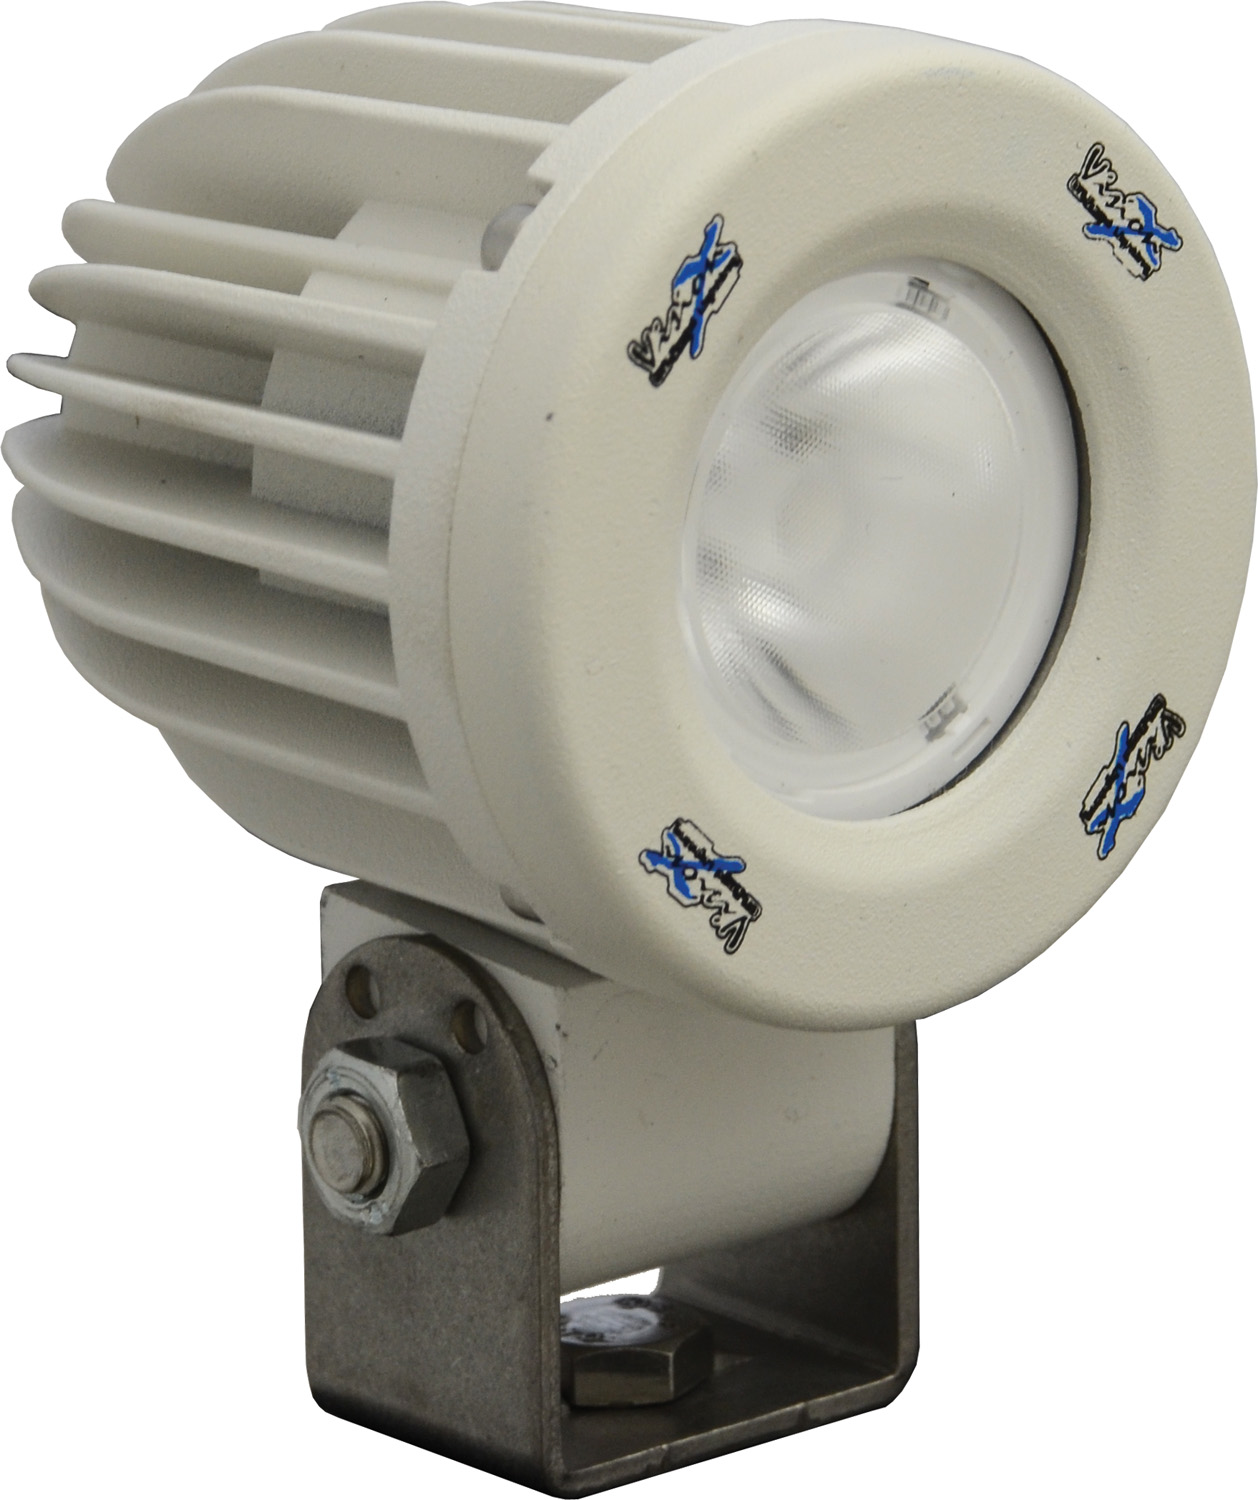 "2"" SOLSTICE SOLO PRIME WHITE 10W LED 10ç NARROW"